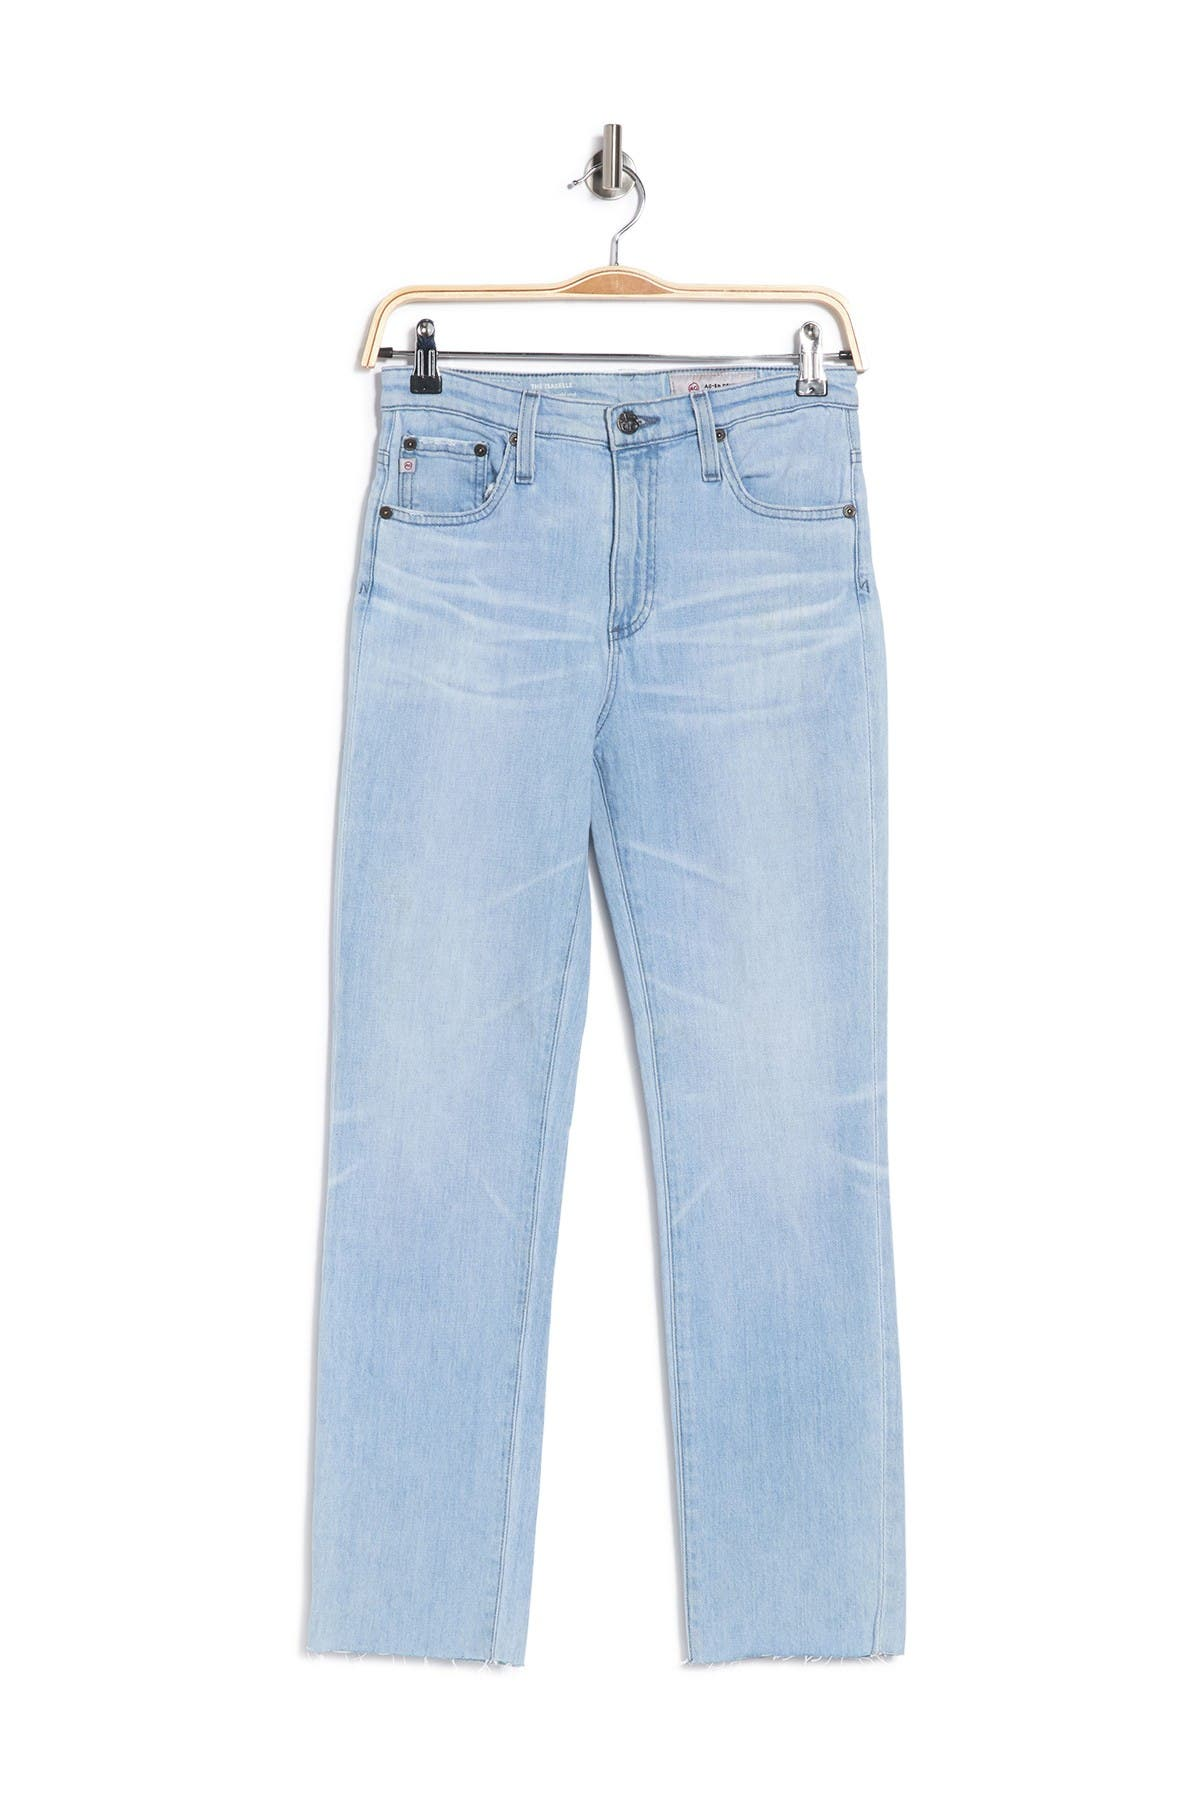 Ag ISABELLE STRAIGHT LEG CROP JEANS